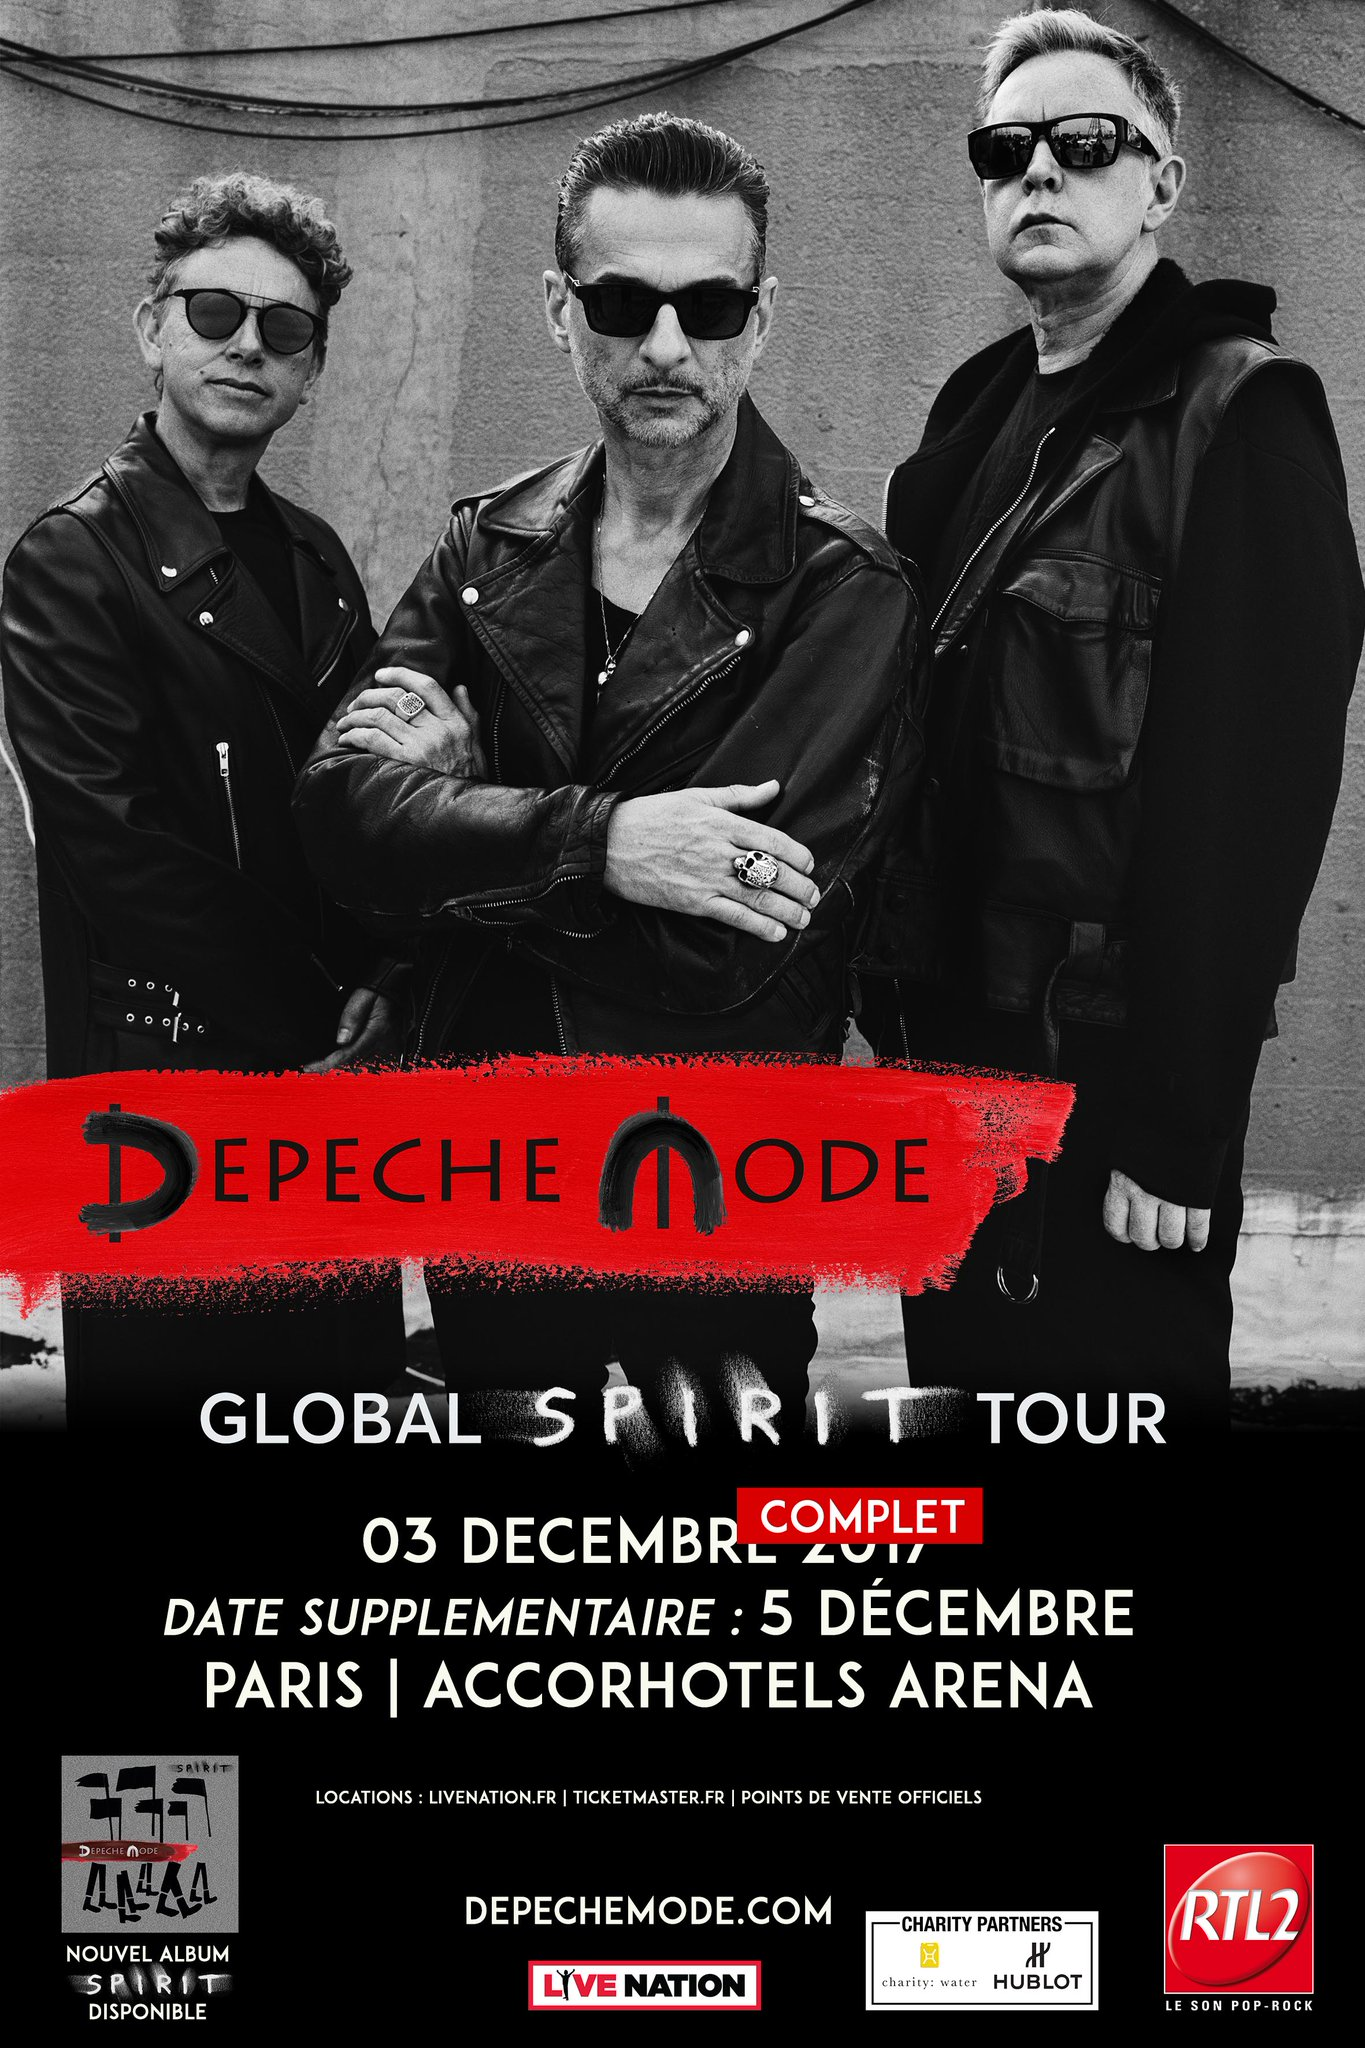 Second Paris show just added on December 5 at AccorHotels Arena! Tickets available now at https://t.co/joAcBEm3HH. https://t.co/EzBwa6HjzQ